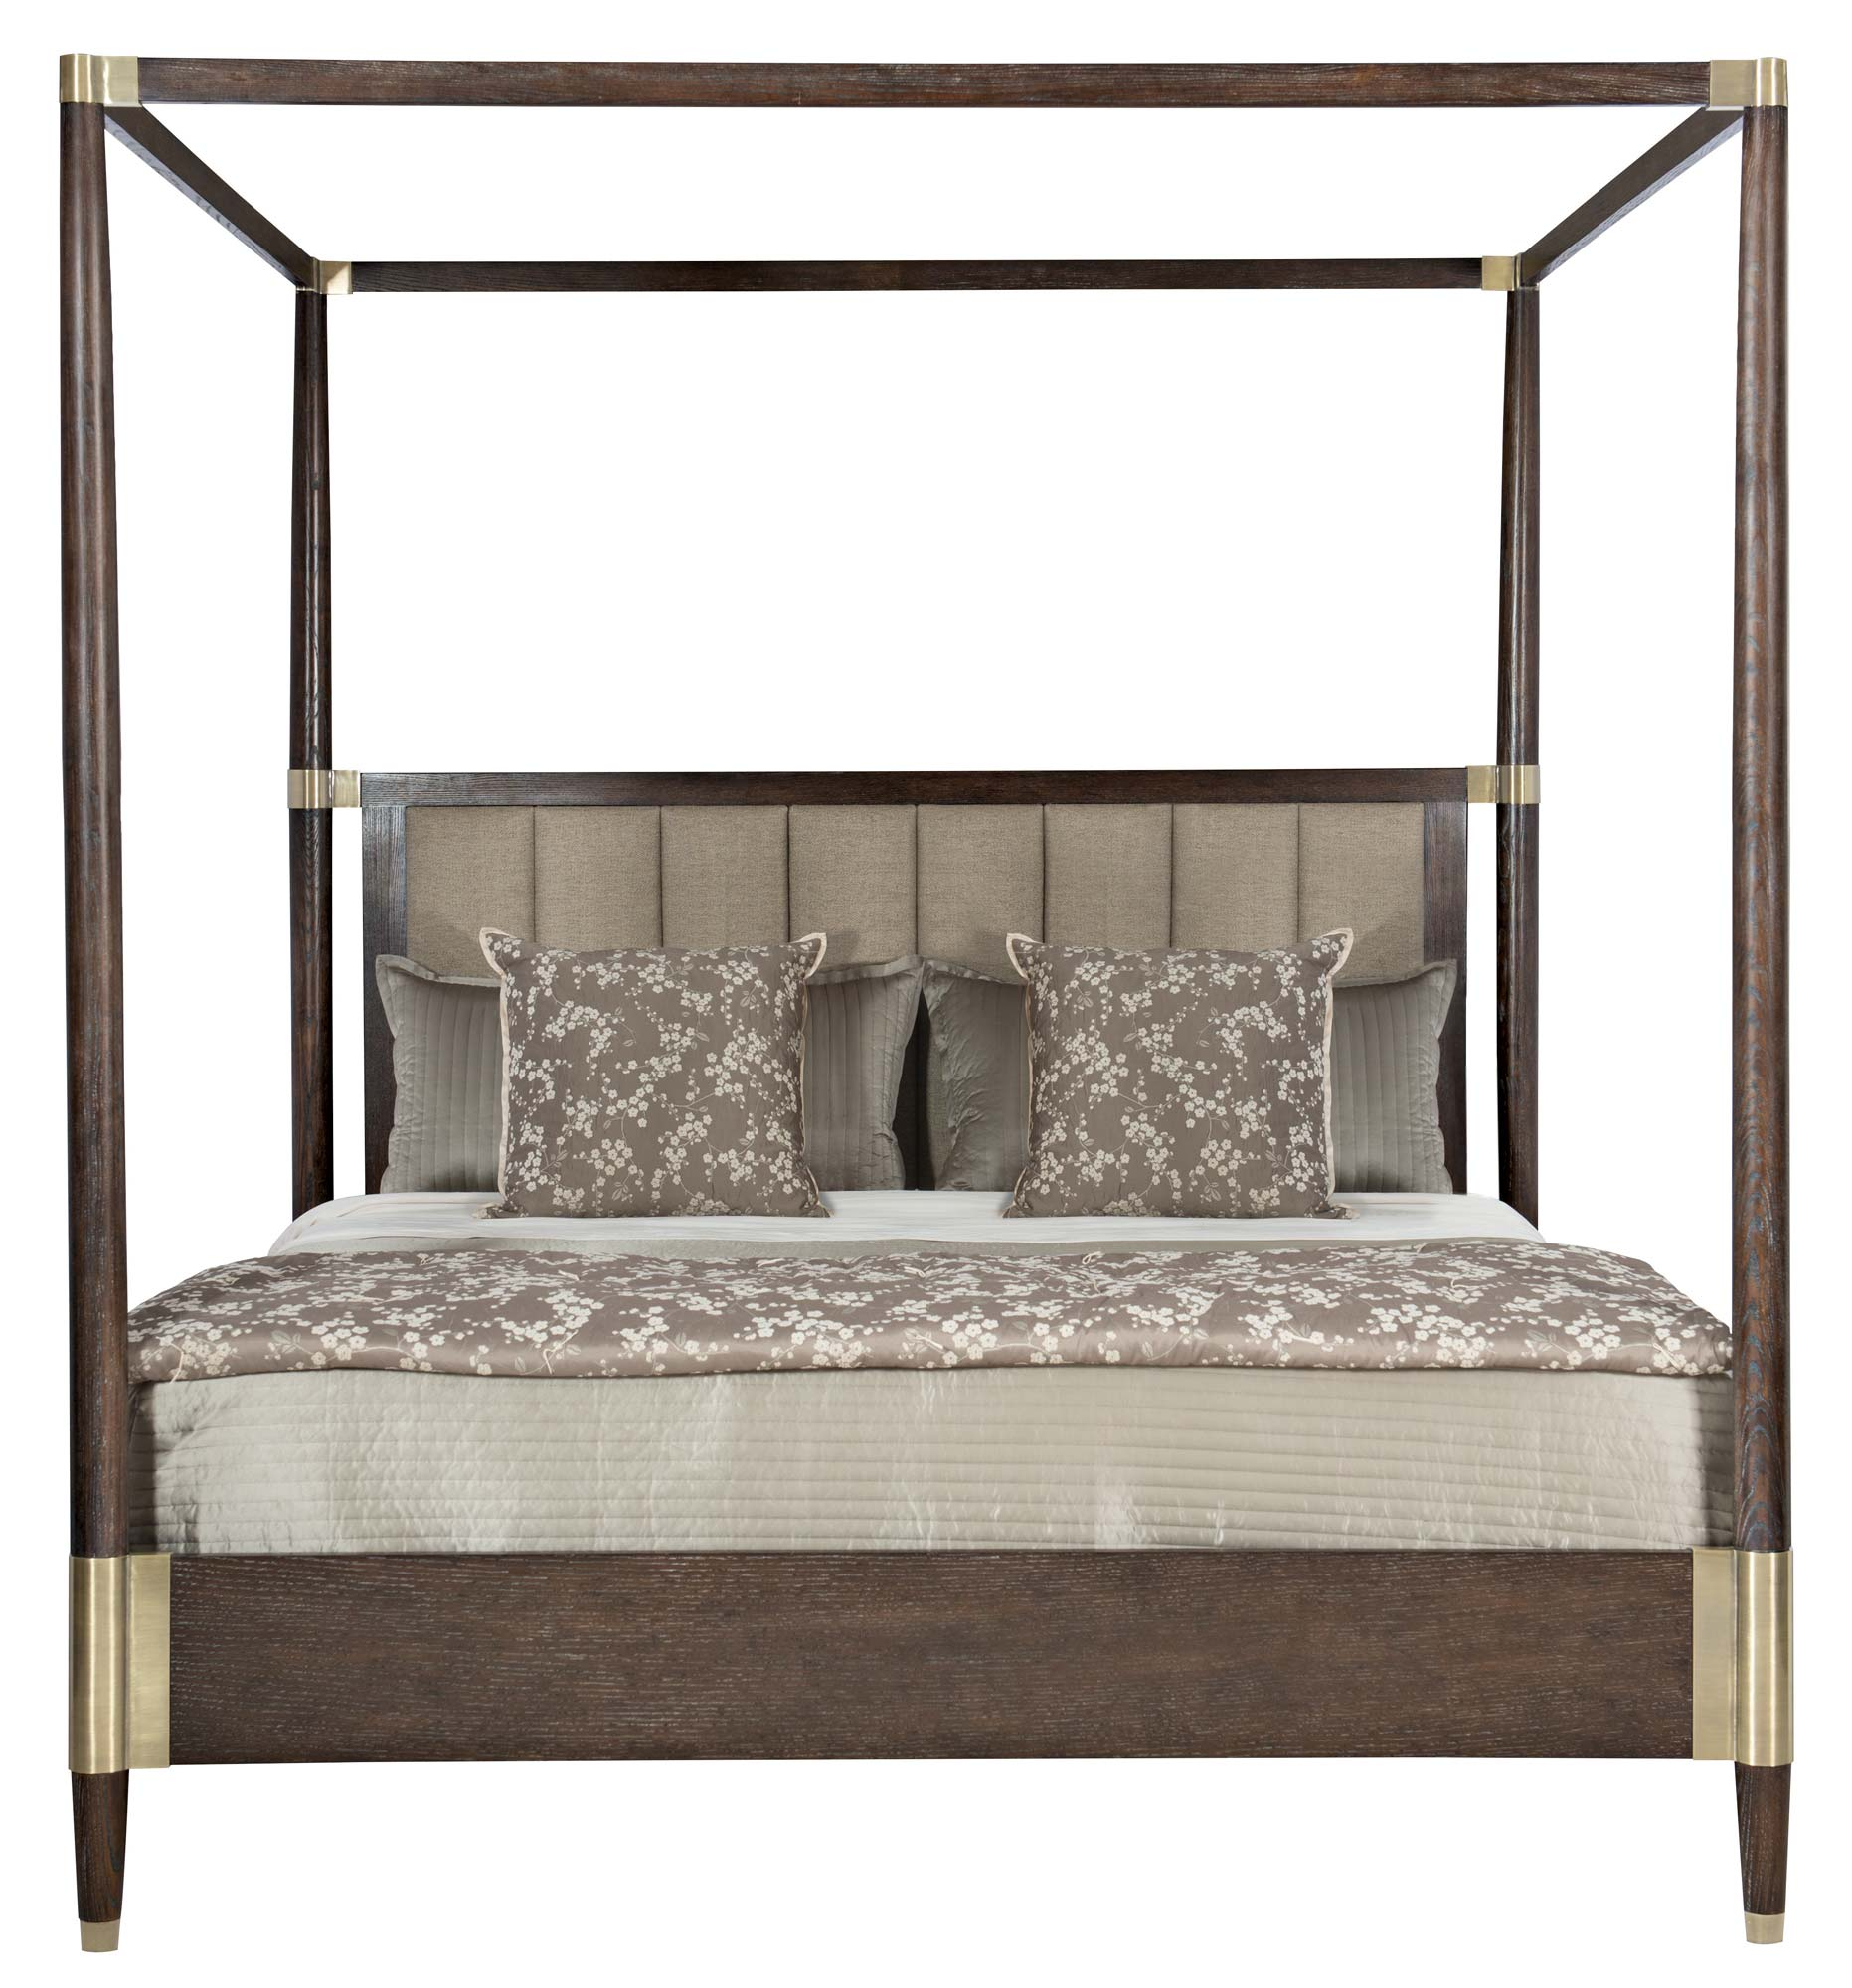 Bernhardt King Canopy Bed